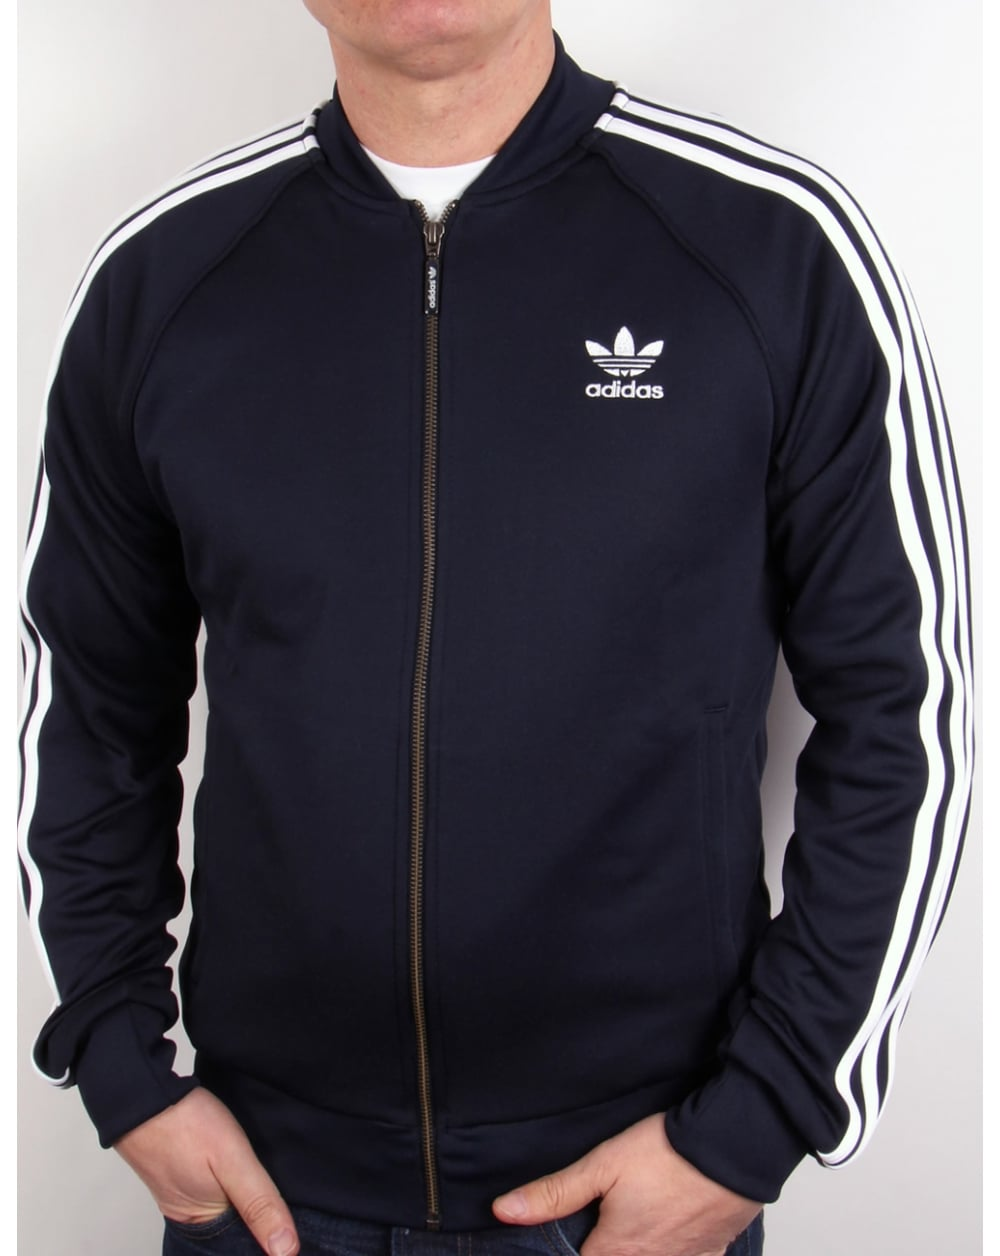 adidas originals superstar track top navy legend ink jacket. Black Bedroom Furniture Sets. Home Design Ideas